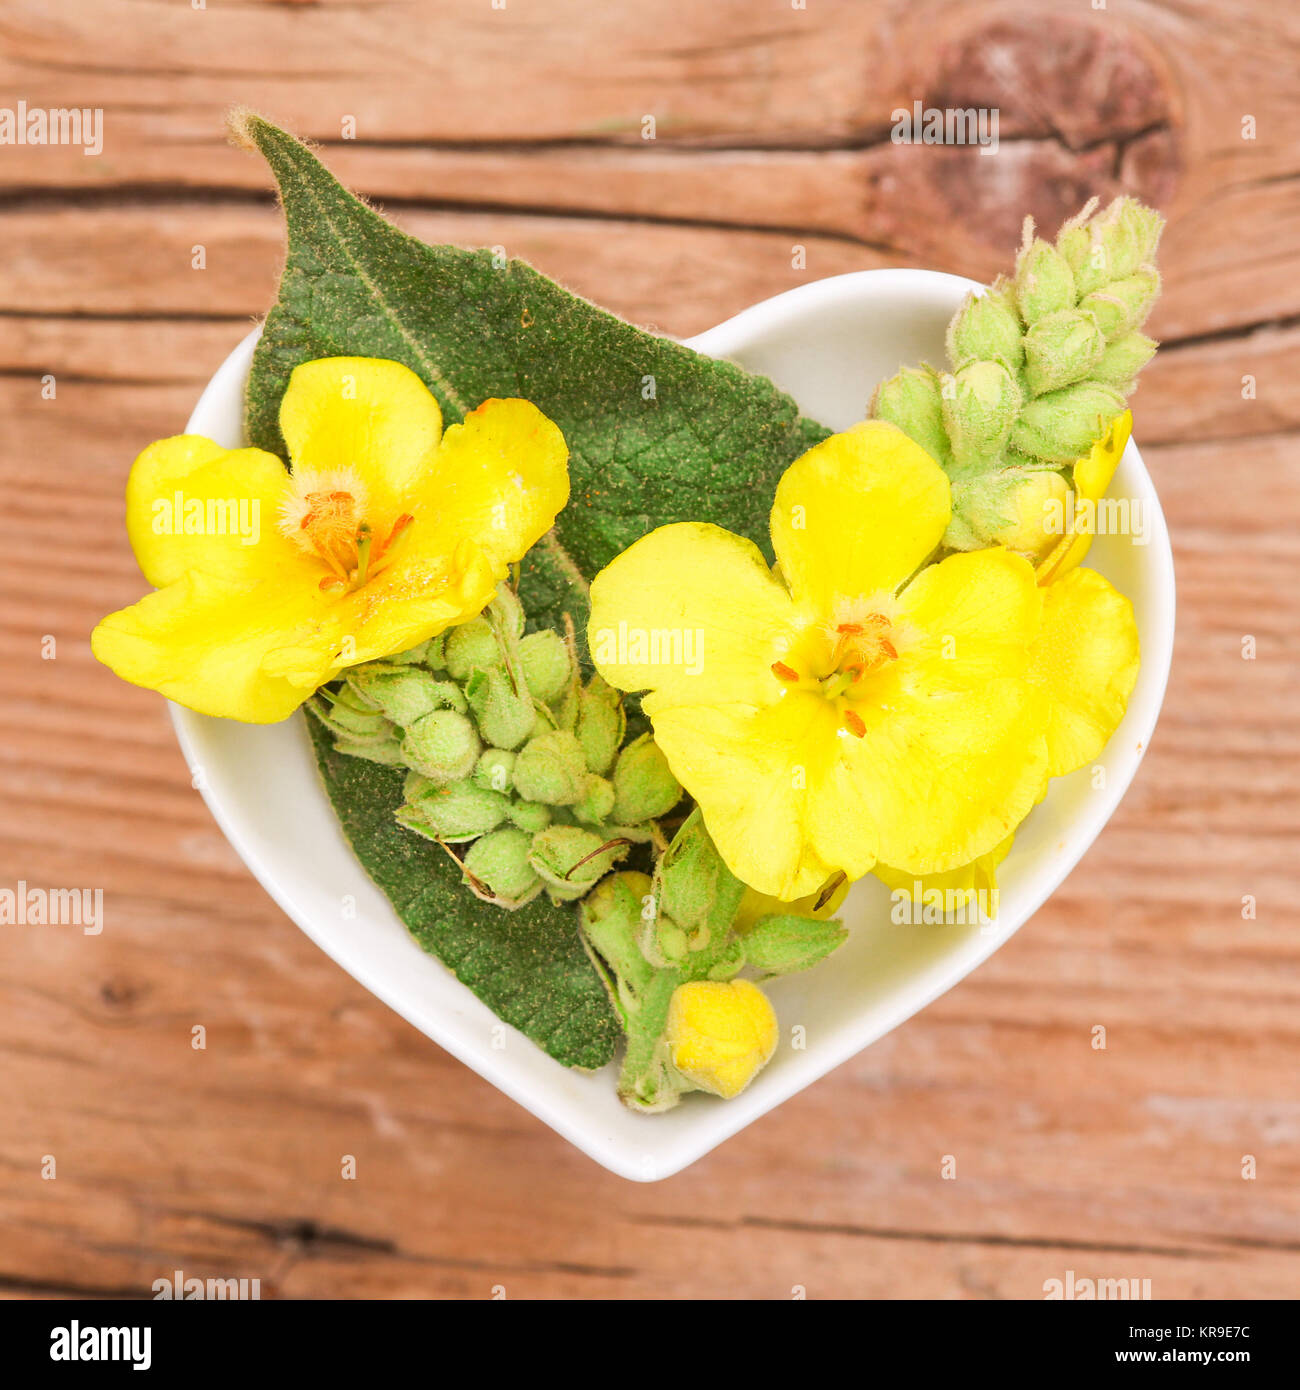 homeopathy and cooking with herbs,mullein - Stock Image